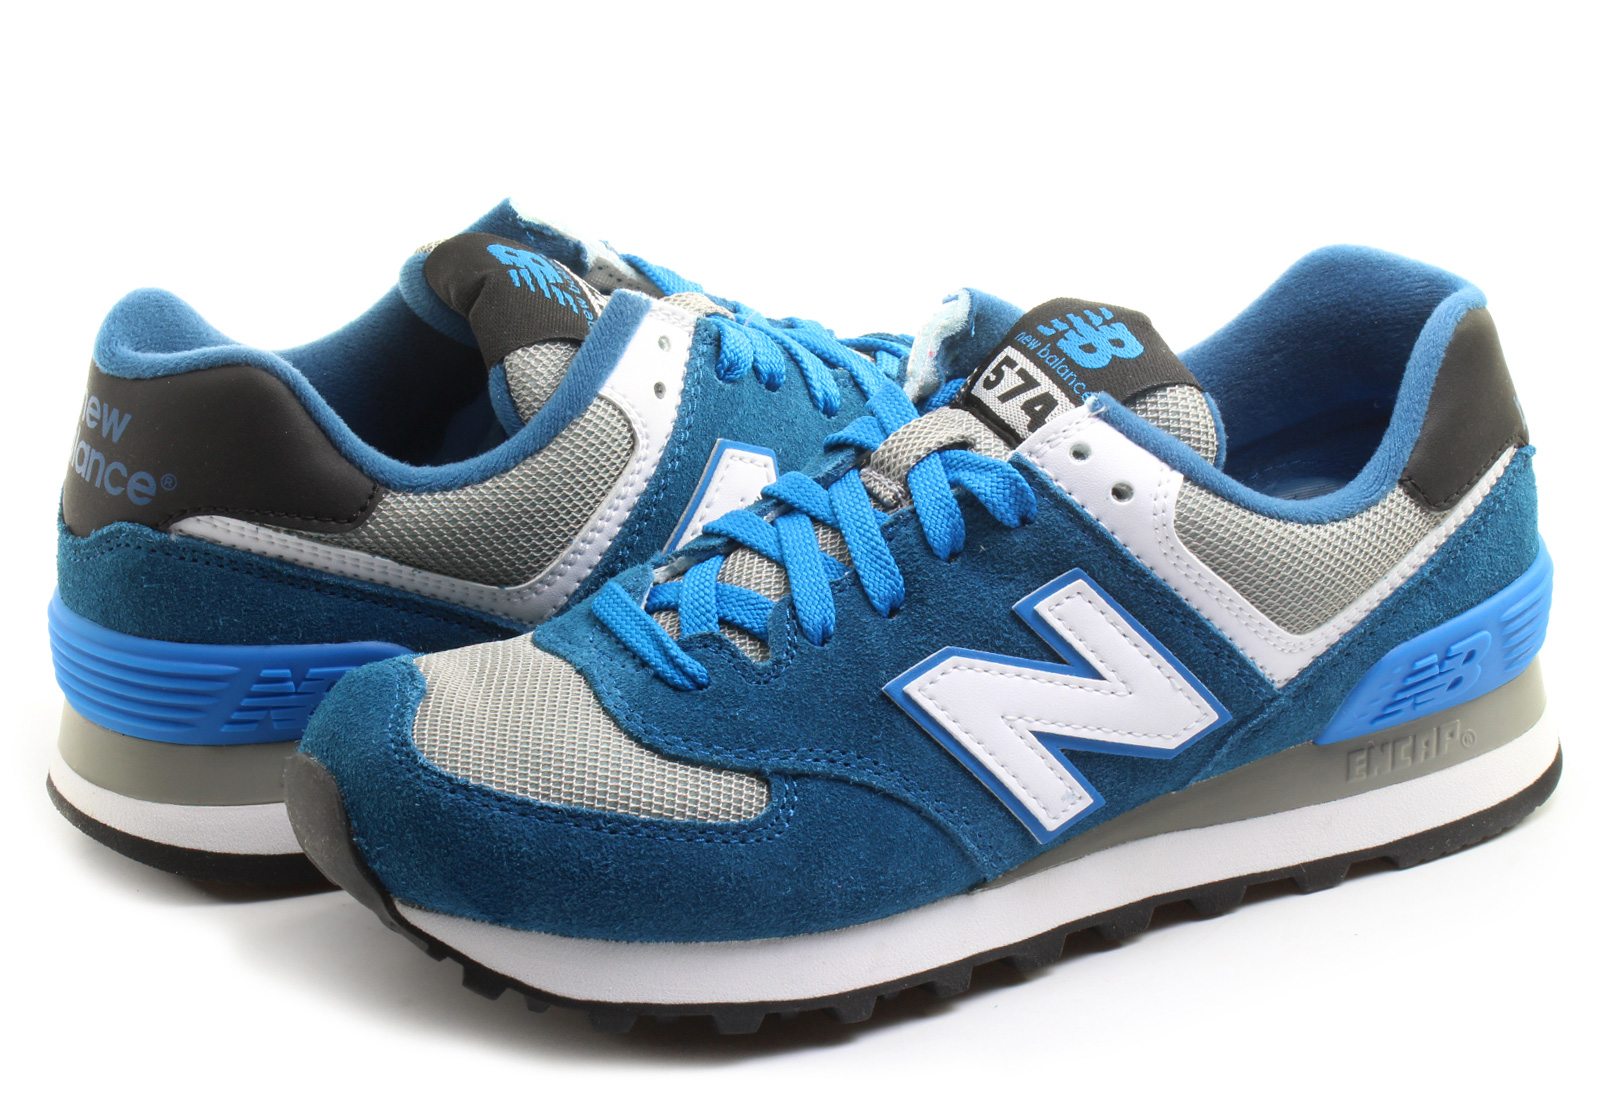 new balance shoes ml574 ml574cpd online shop for sneakers shoes and boots. Black Bedroom Furniture Sets. Home Design Ideas